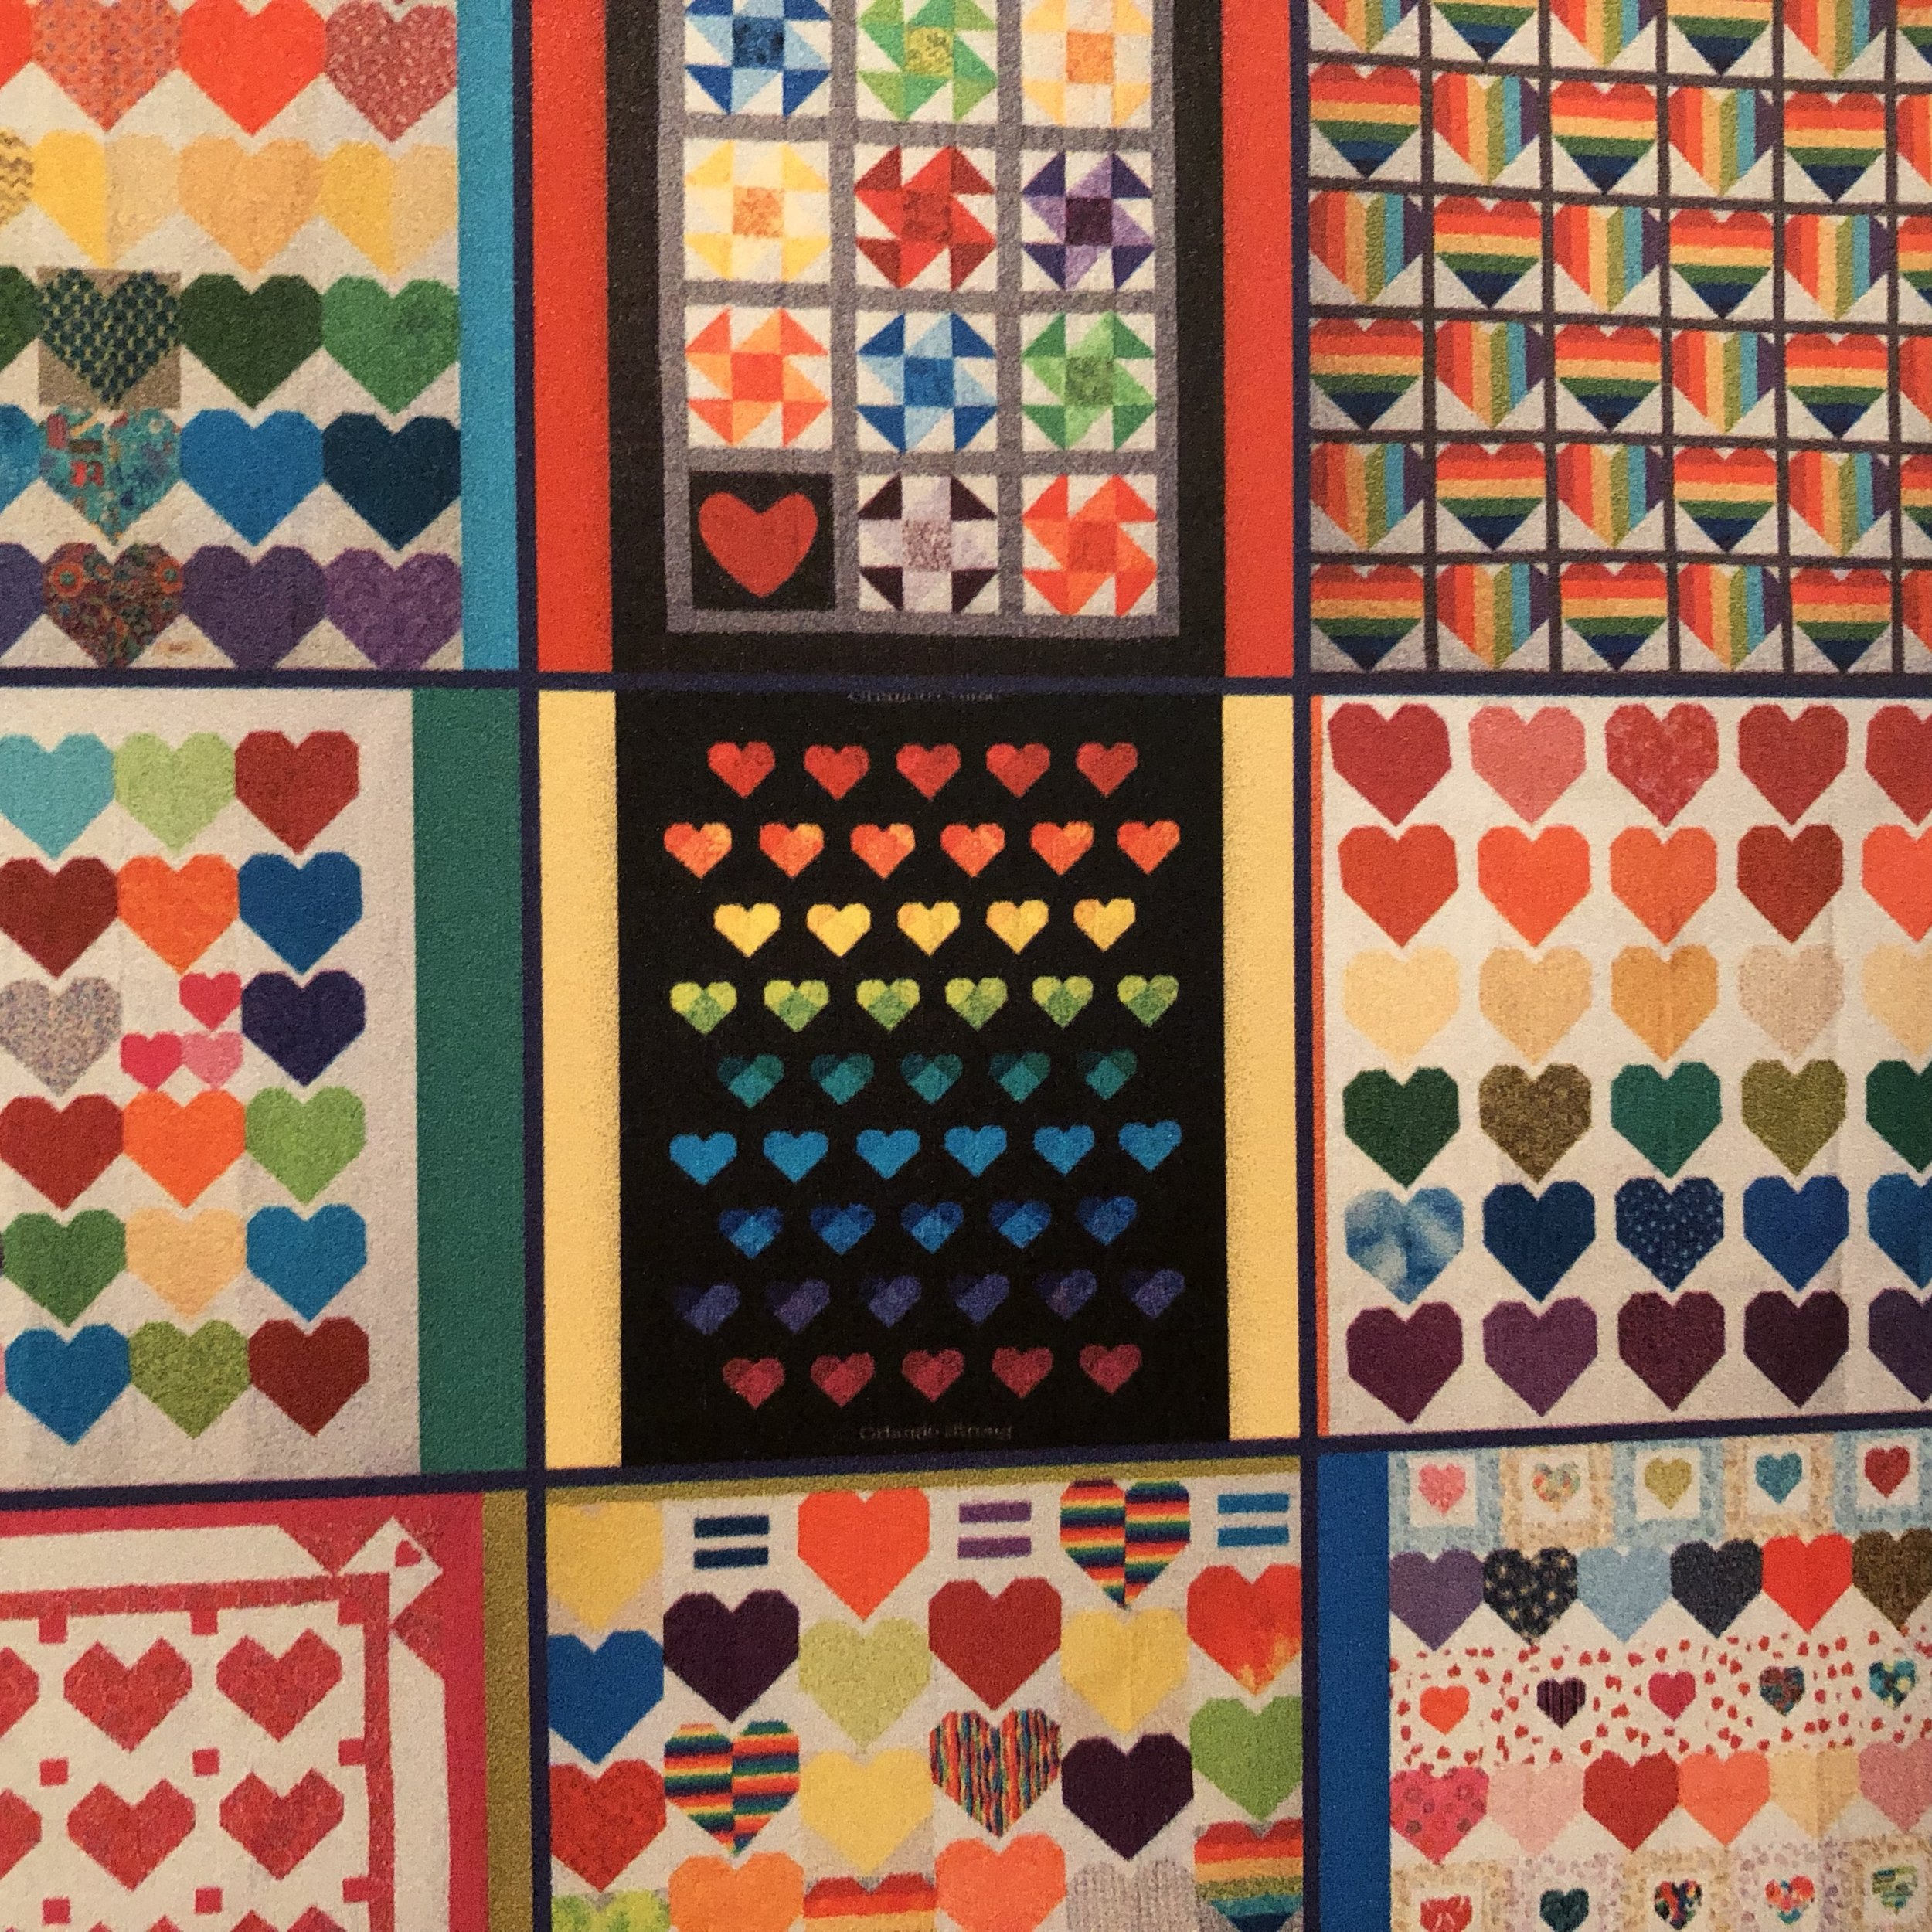 (Then) Police Chief John Mina selected that gorgeous quilt shown in the center with the black background.